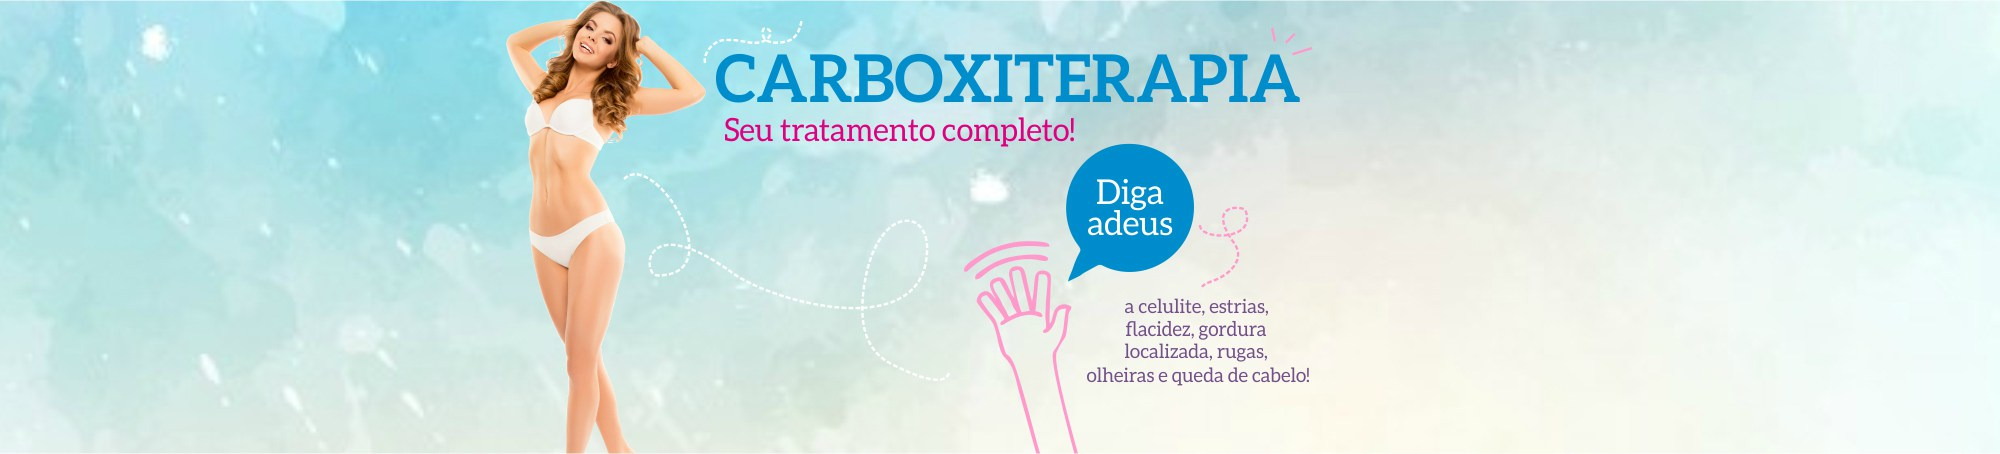 Carboxiterapia-Fisest-site